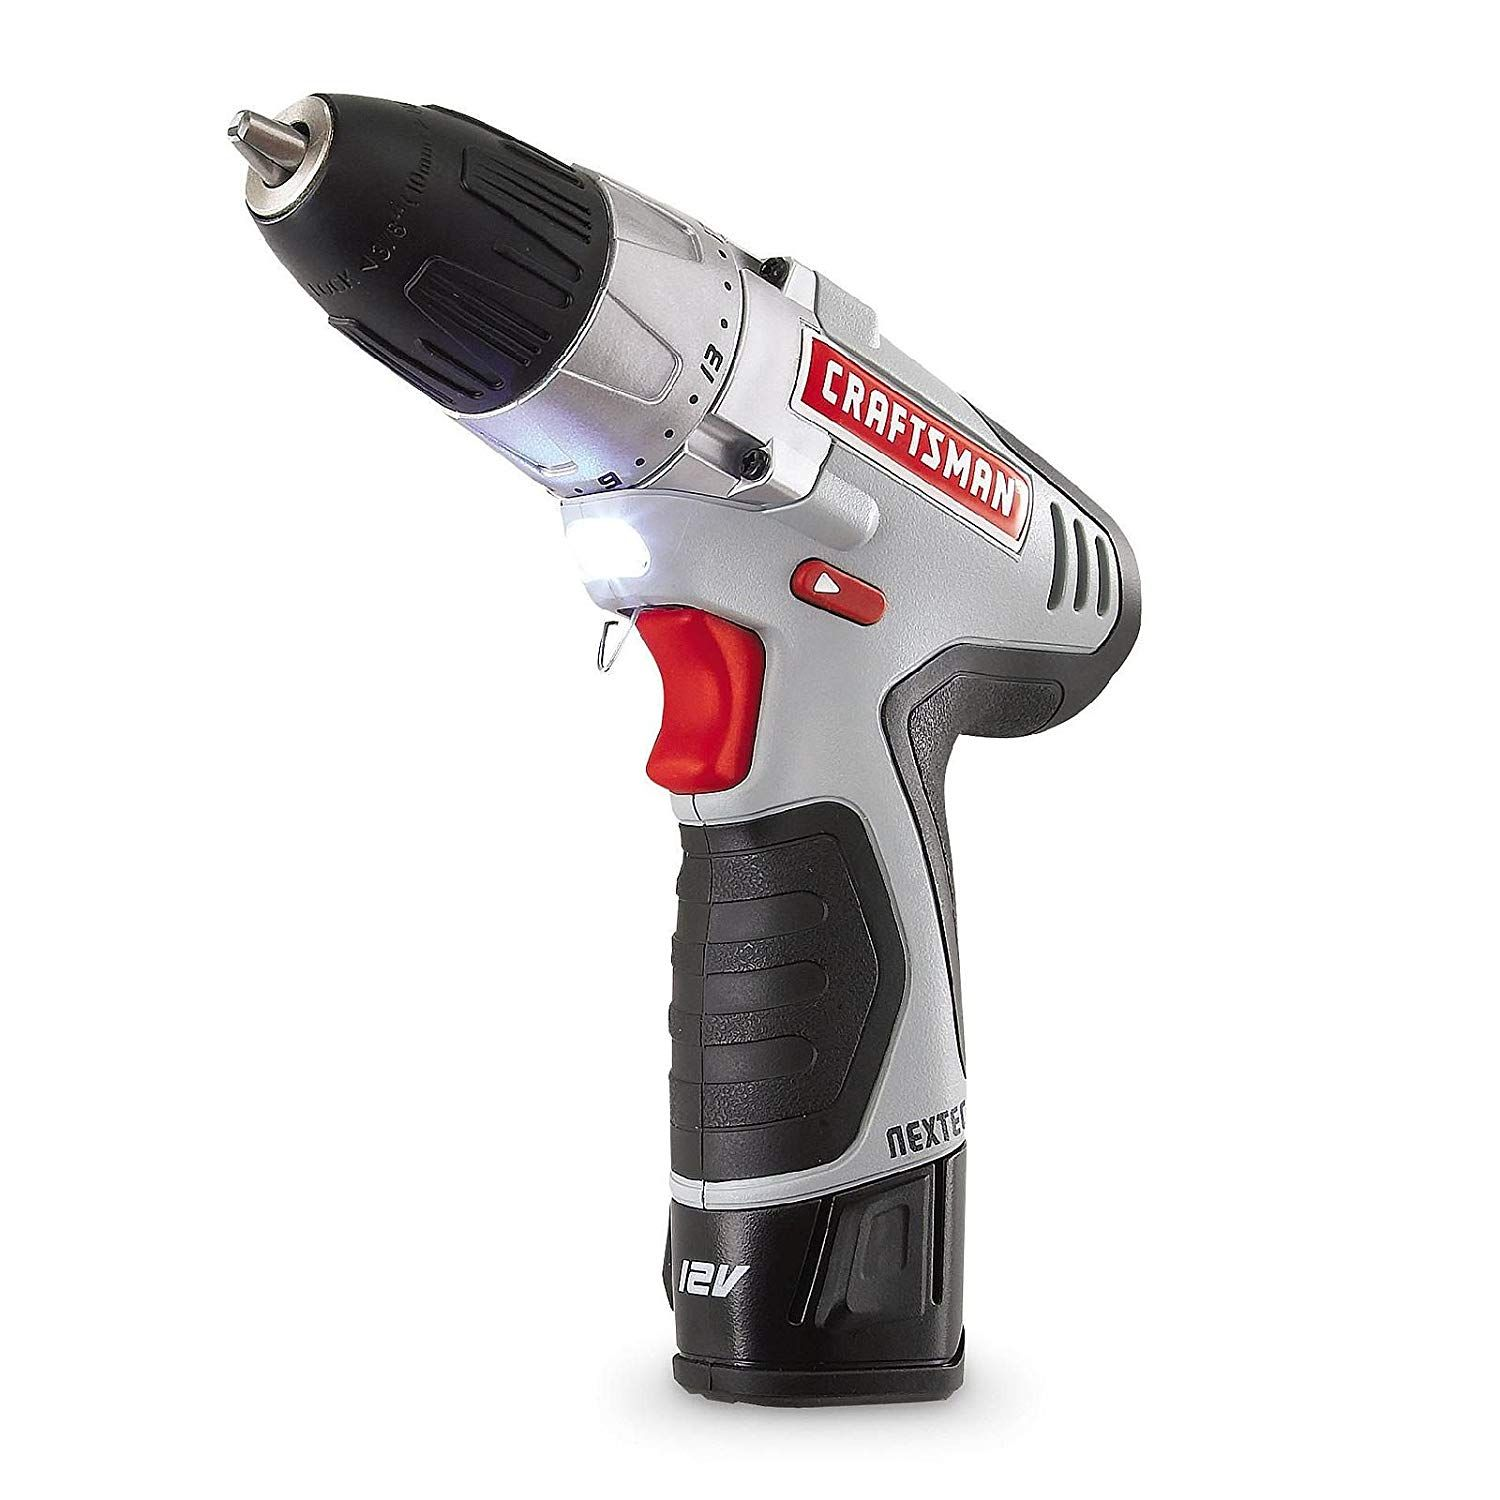 Craftsman N17586 Nextec 12 0v Lithium Ion Drill Driver Kit With Ergonomic Handle And Energy Star Qualified Https Powerdri Drill Driver Drill Ergonomic Handle